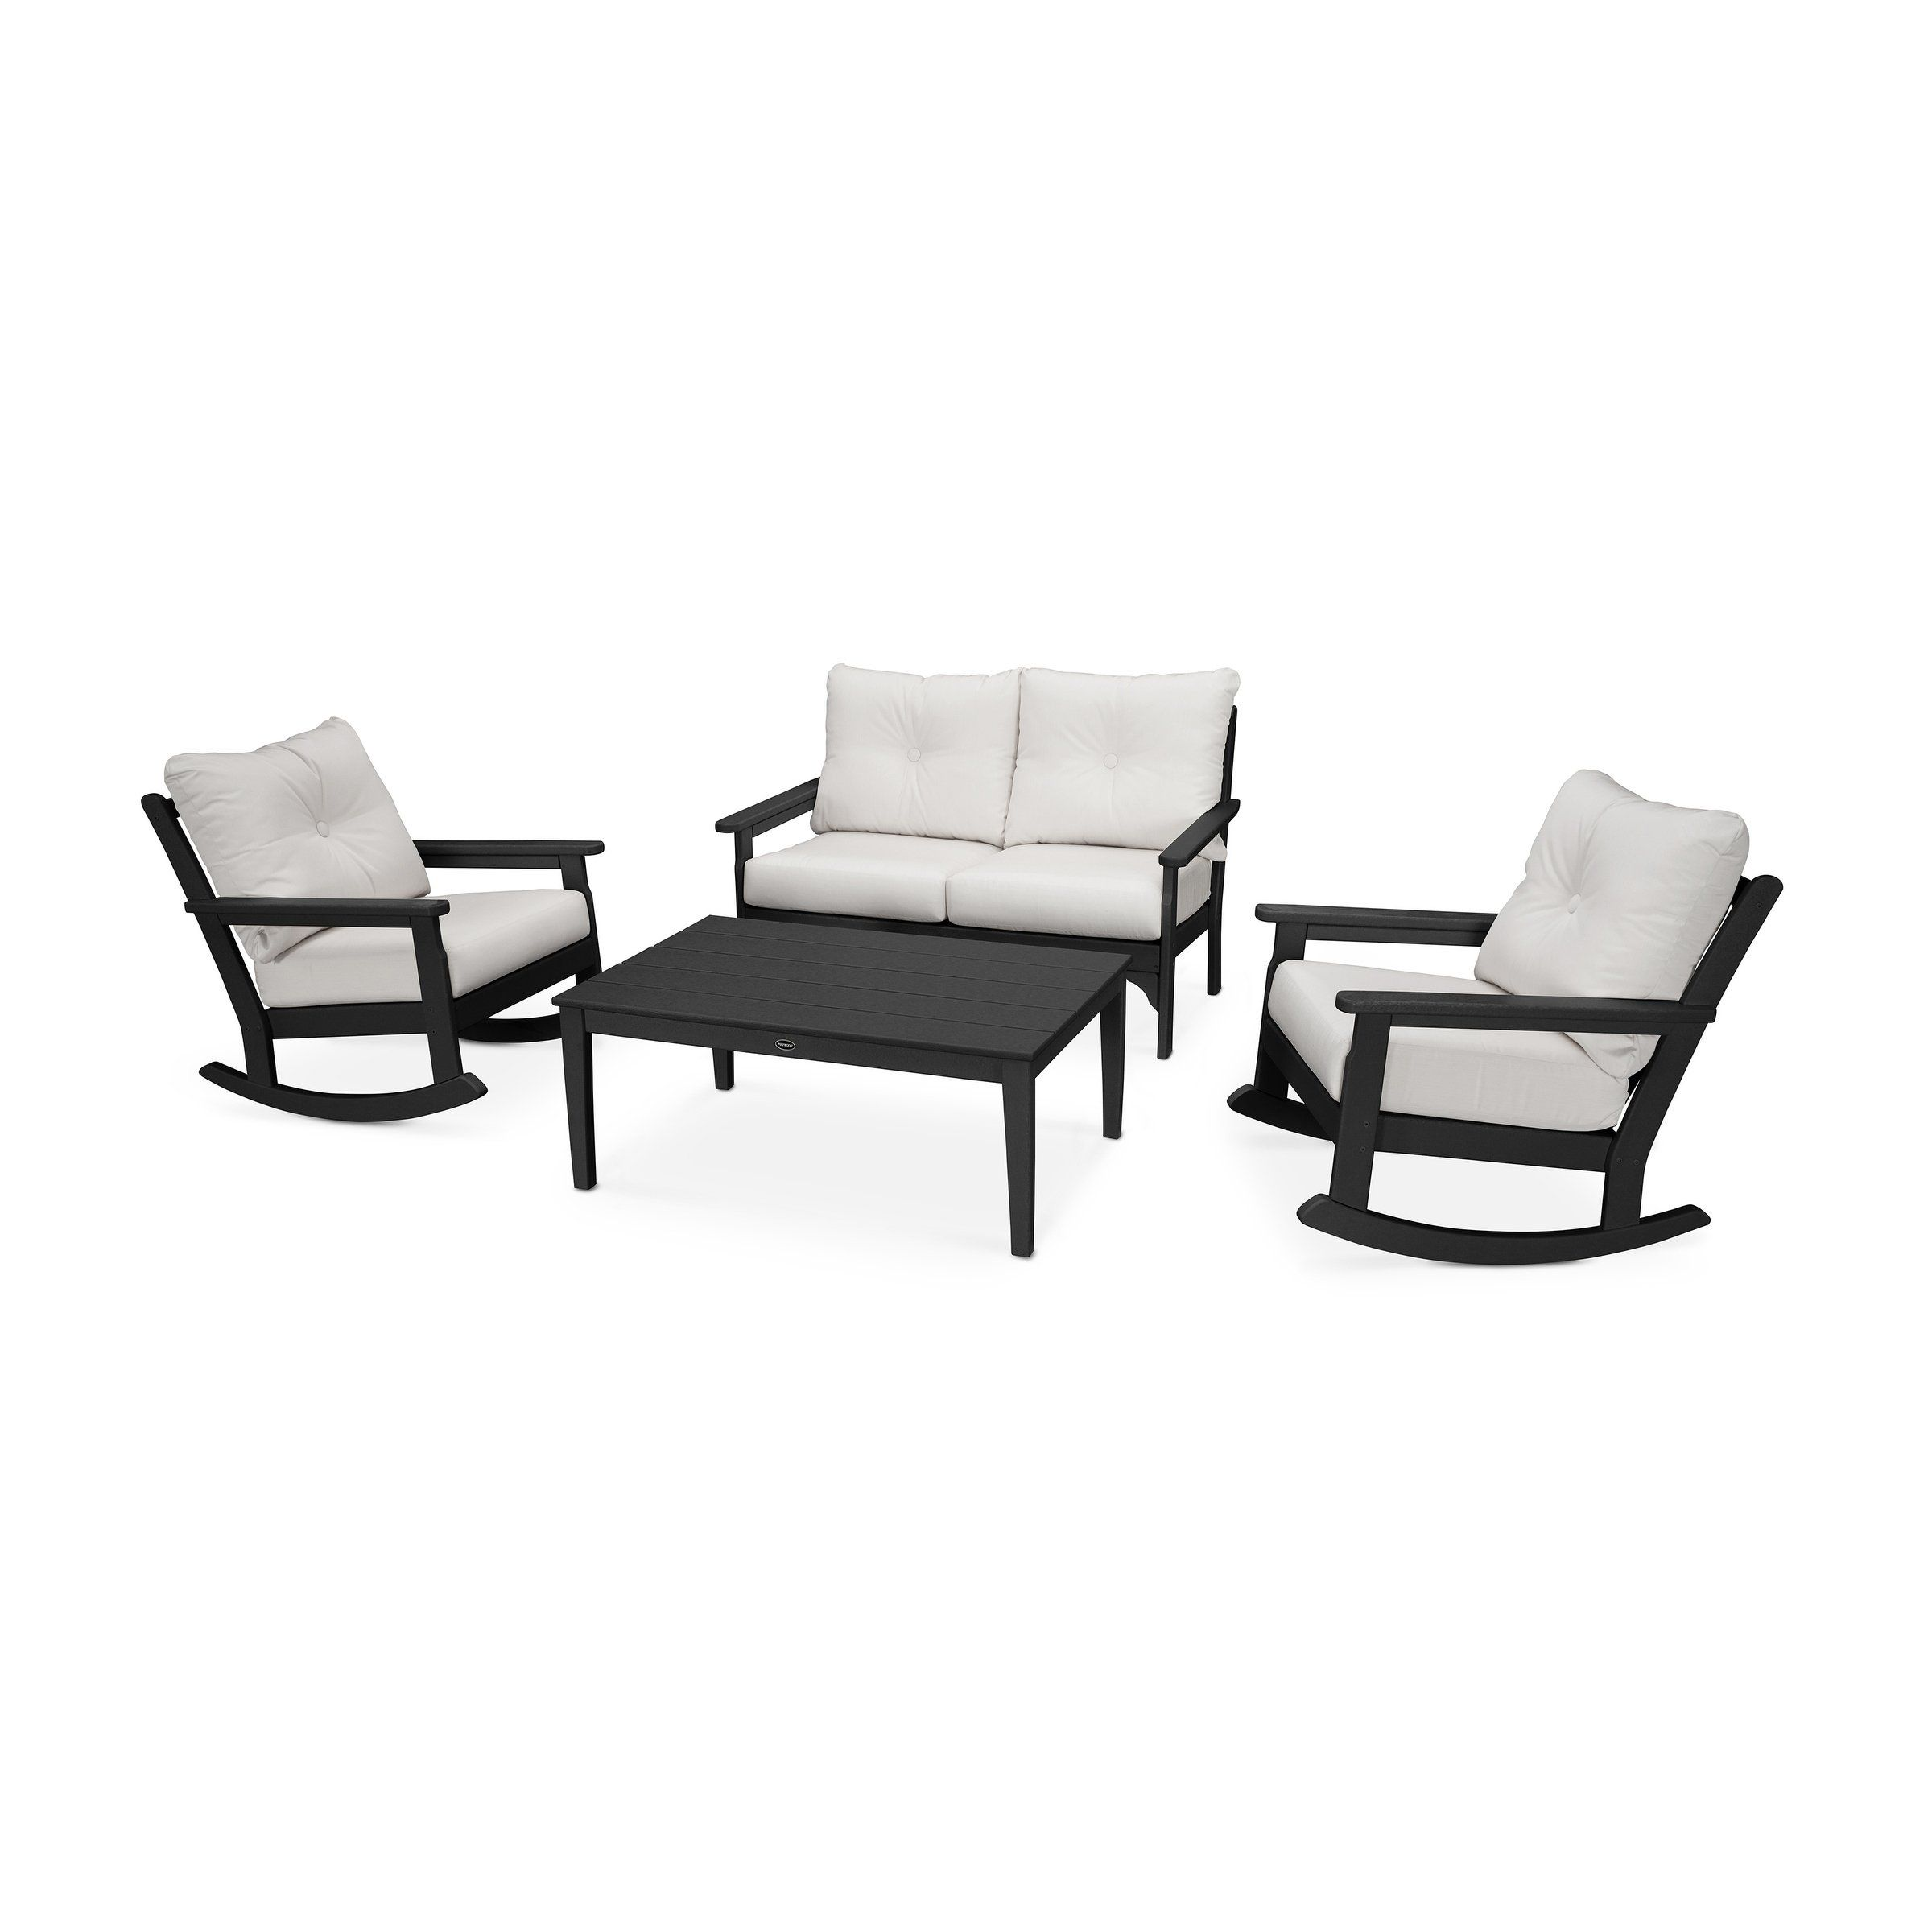 Vineyard 4 Piece Deep Seating Rocking Chair Set Assembly